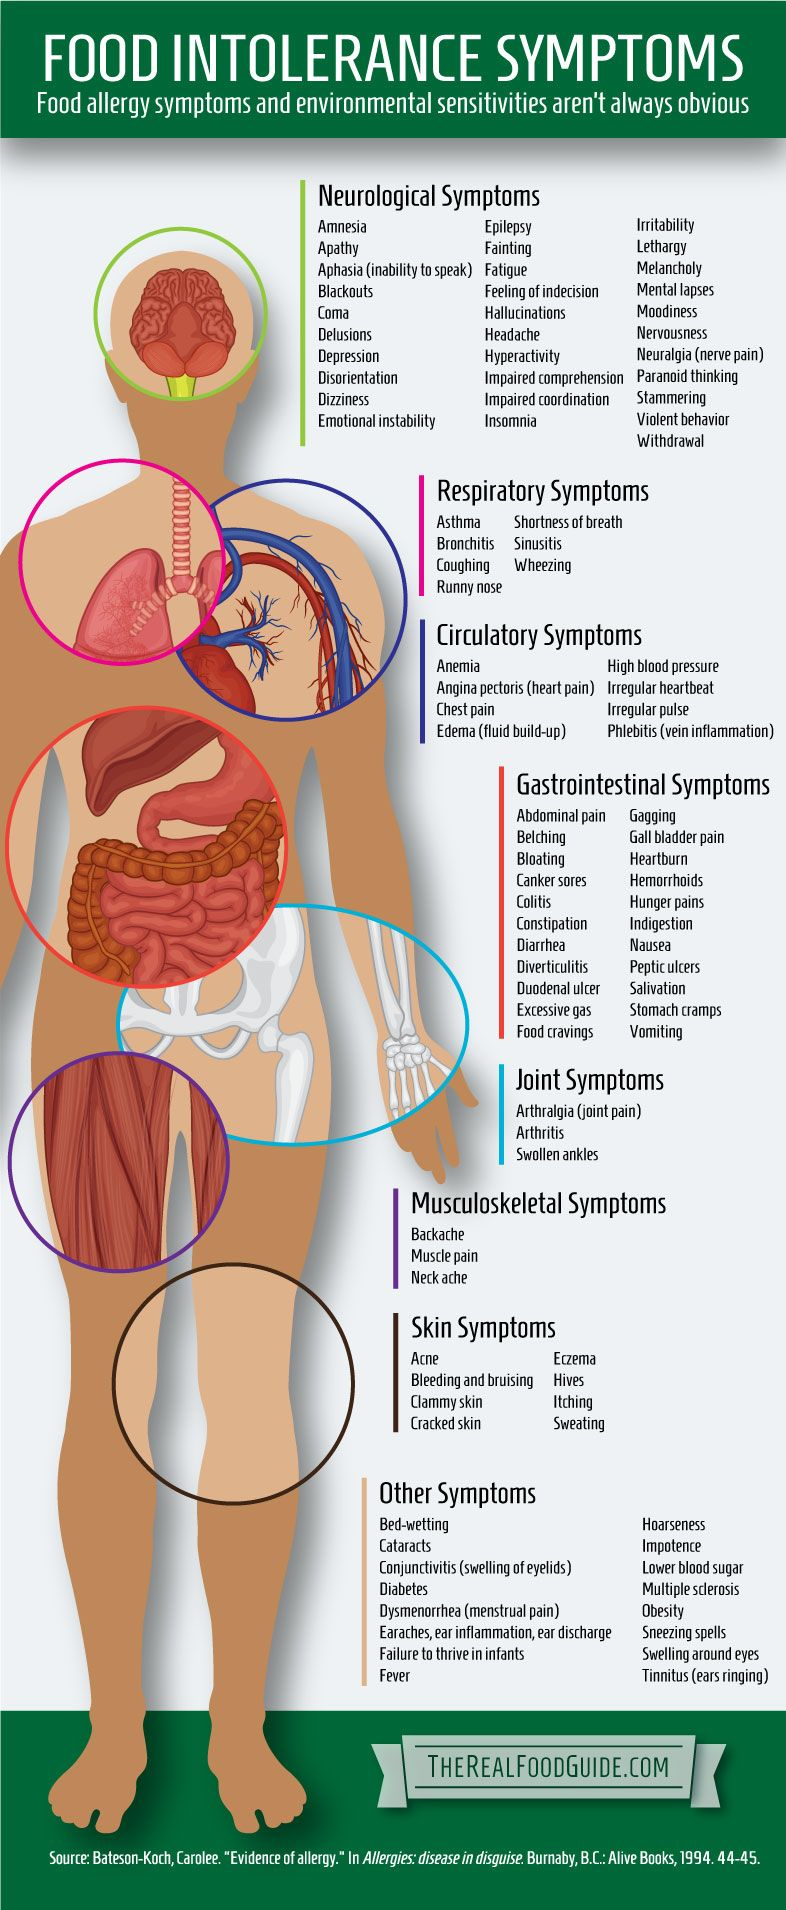 Food intolerance symptoms - The Real Food Guide therealfoodguide.com